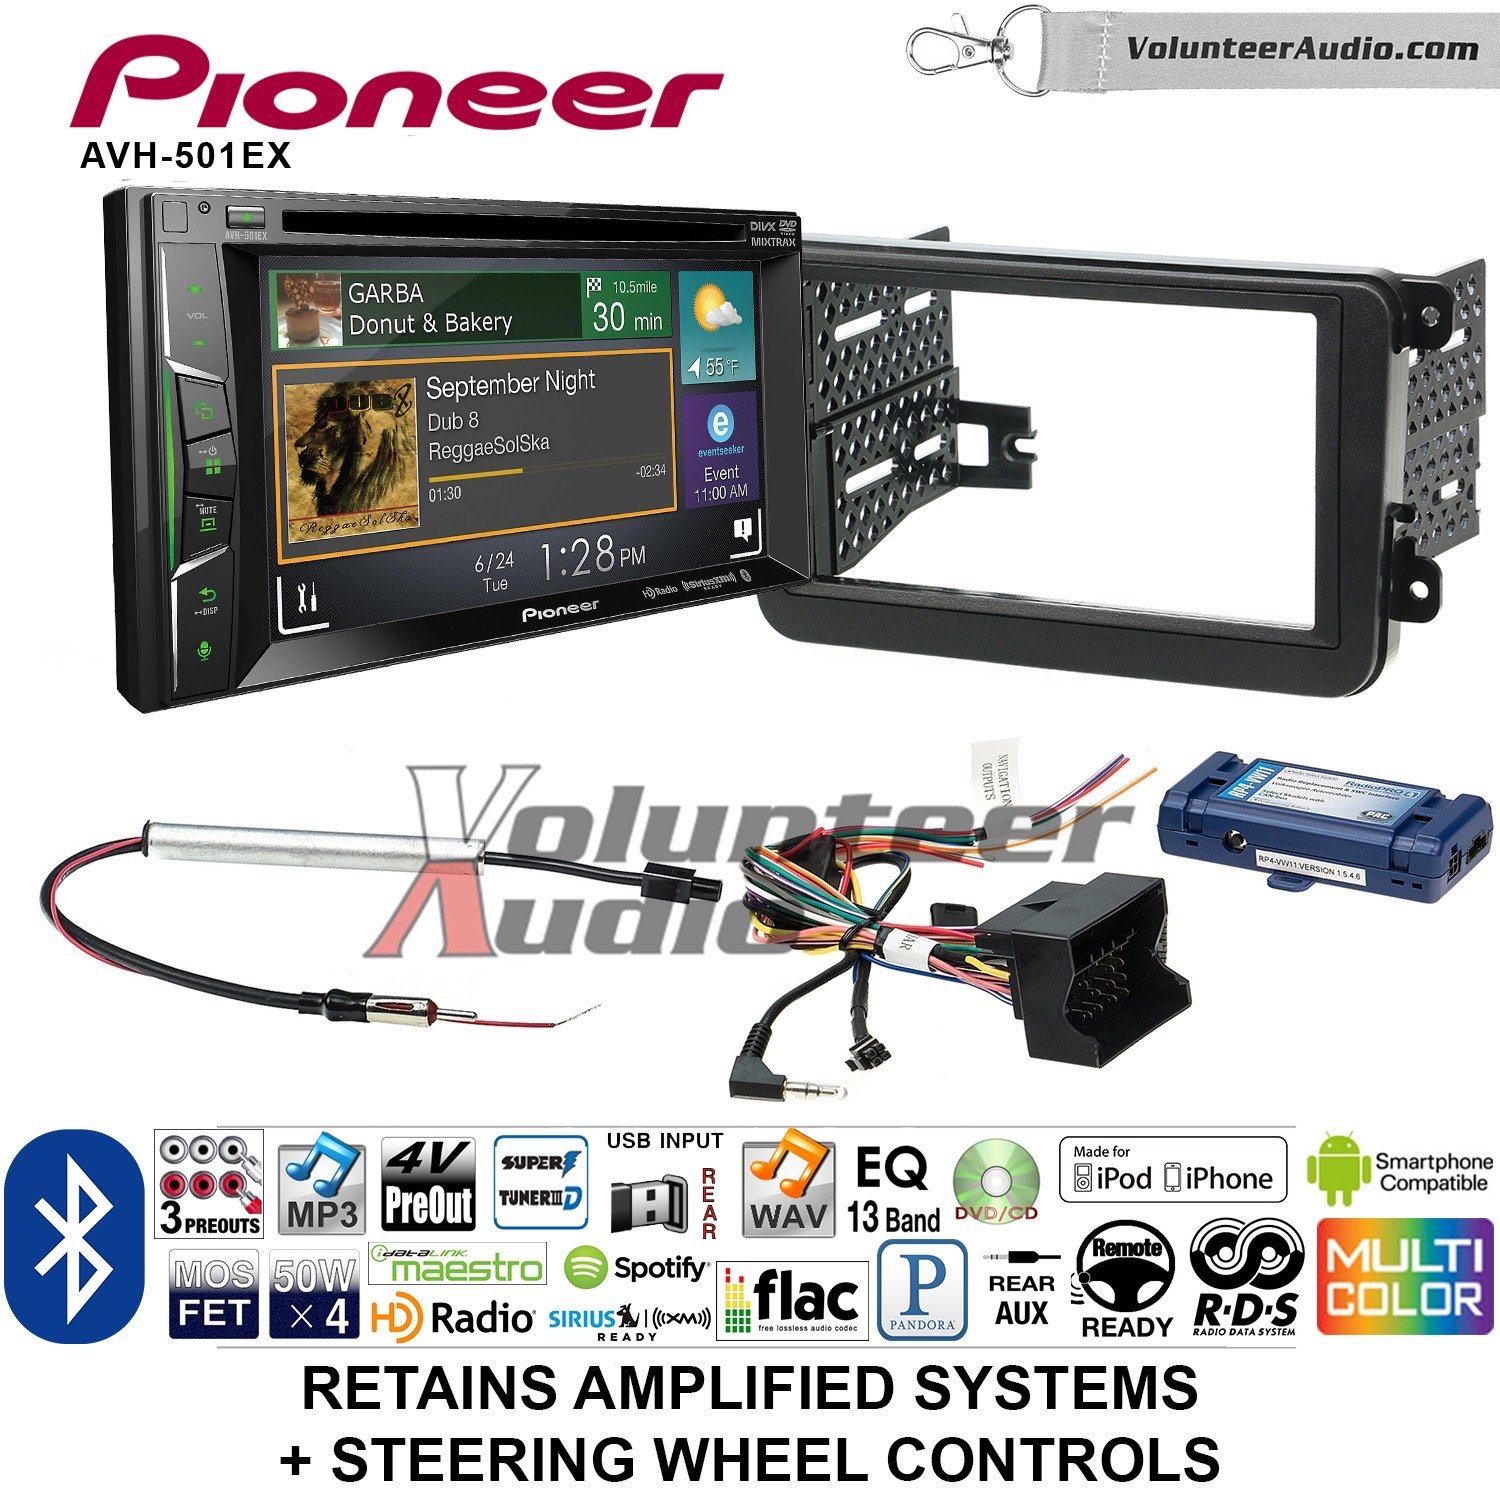 Pioneer AVH-501EX Double Din Radio Install Kit with DVD/CD Player Bluetooth Fits 2012-2014 Volkswagen Beetle, 2010-2014 Golf, 2006-2015 Jetta by Volunteer Audio (Image #1)